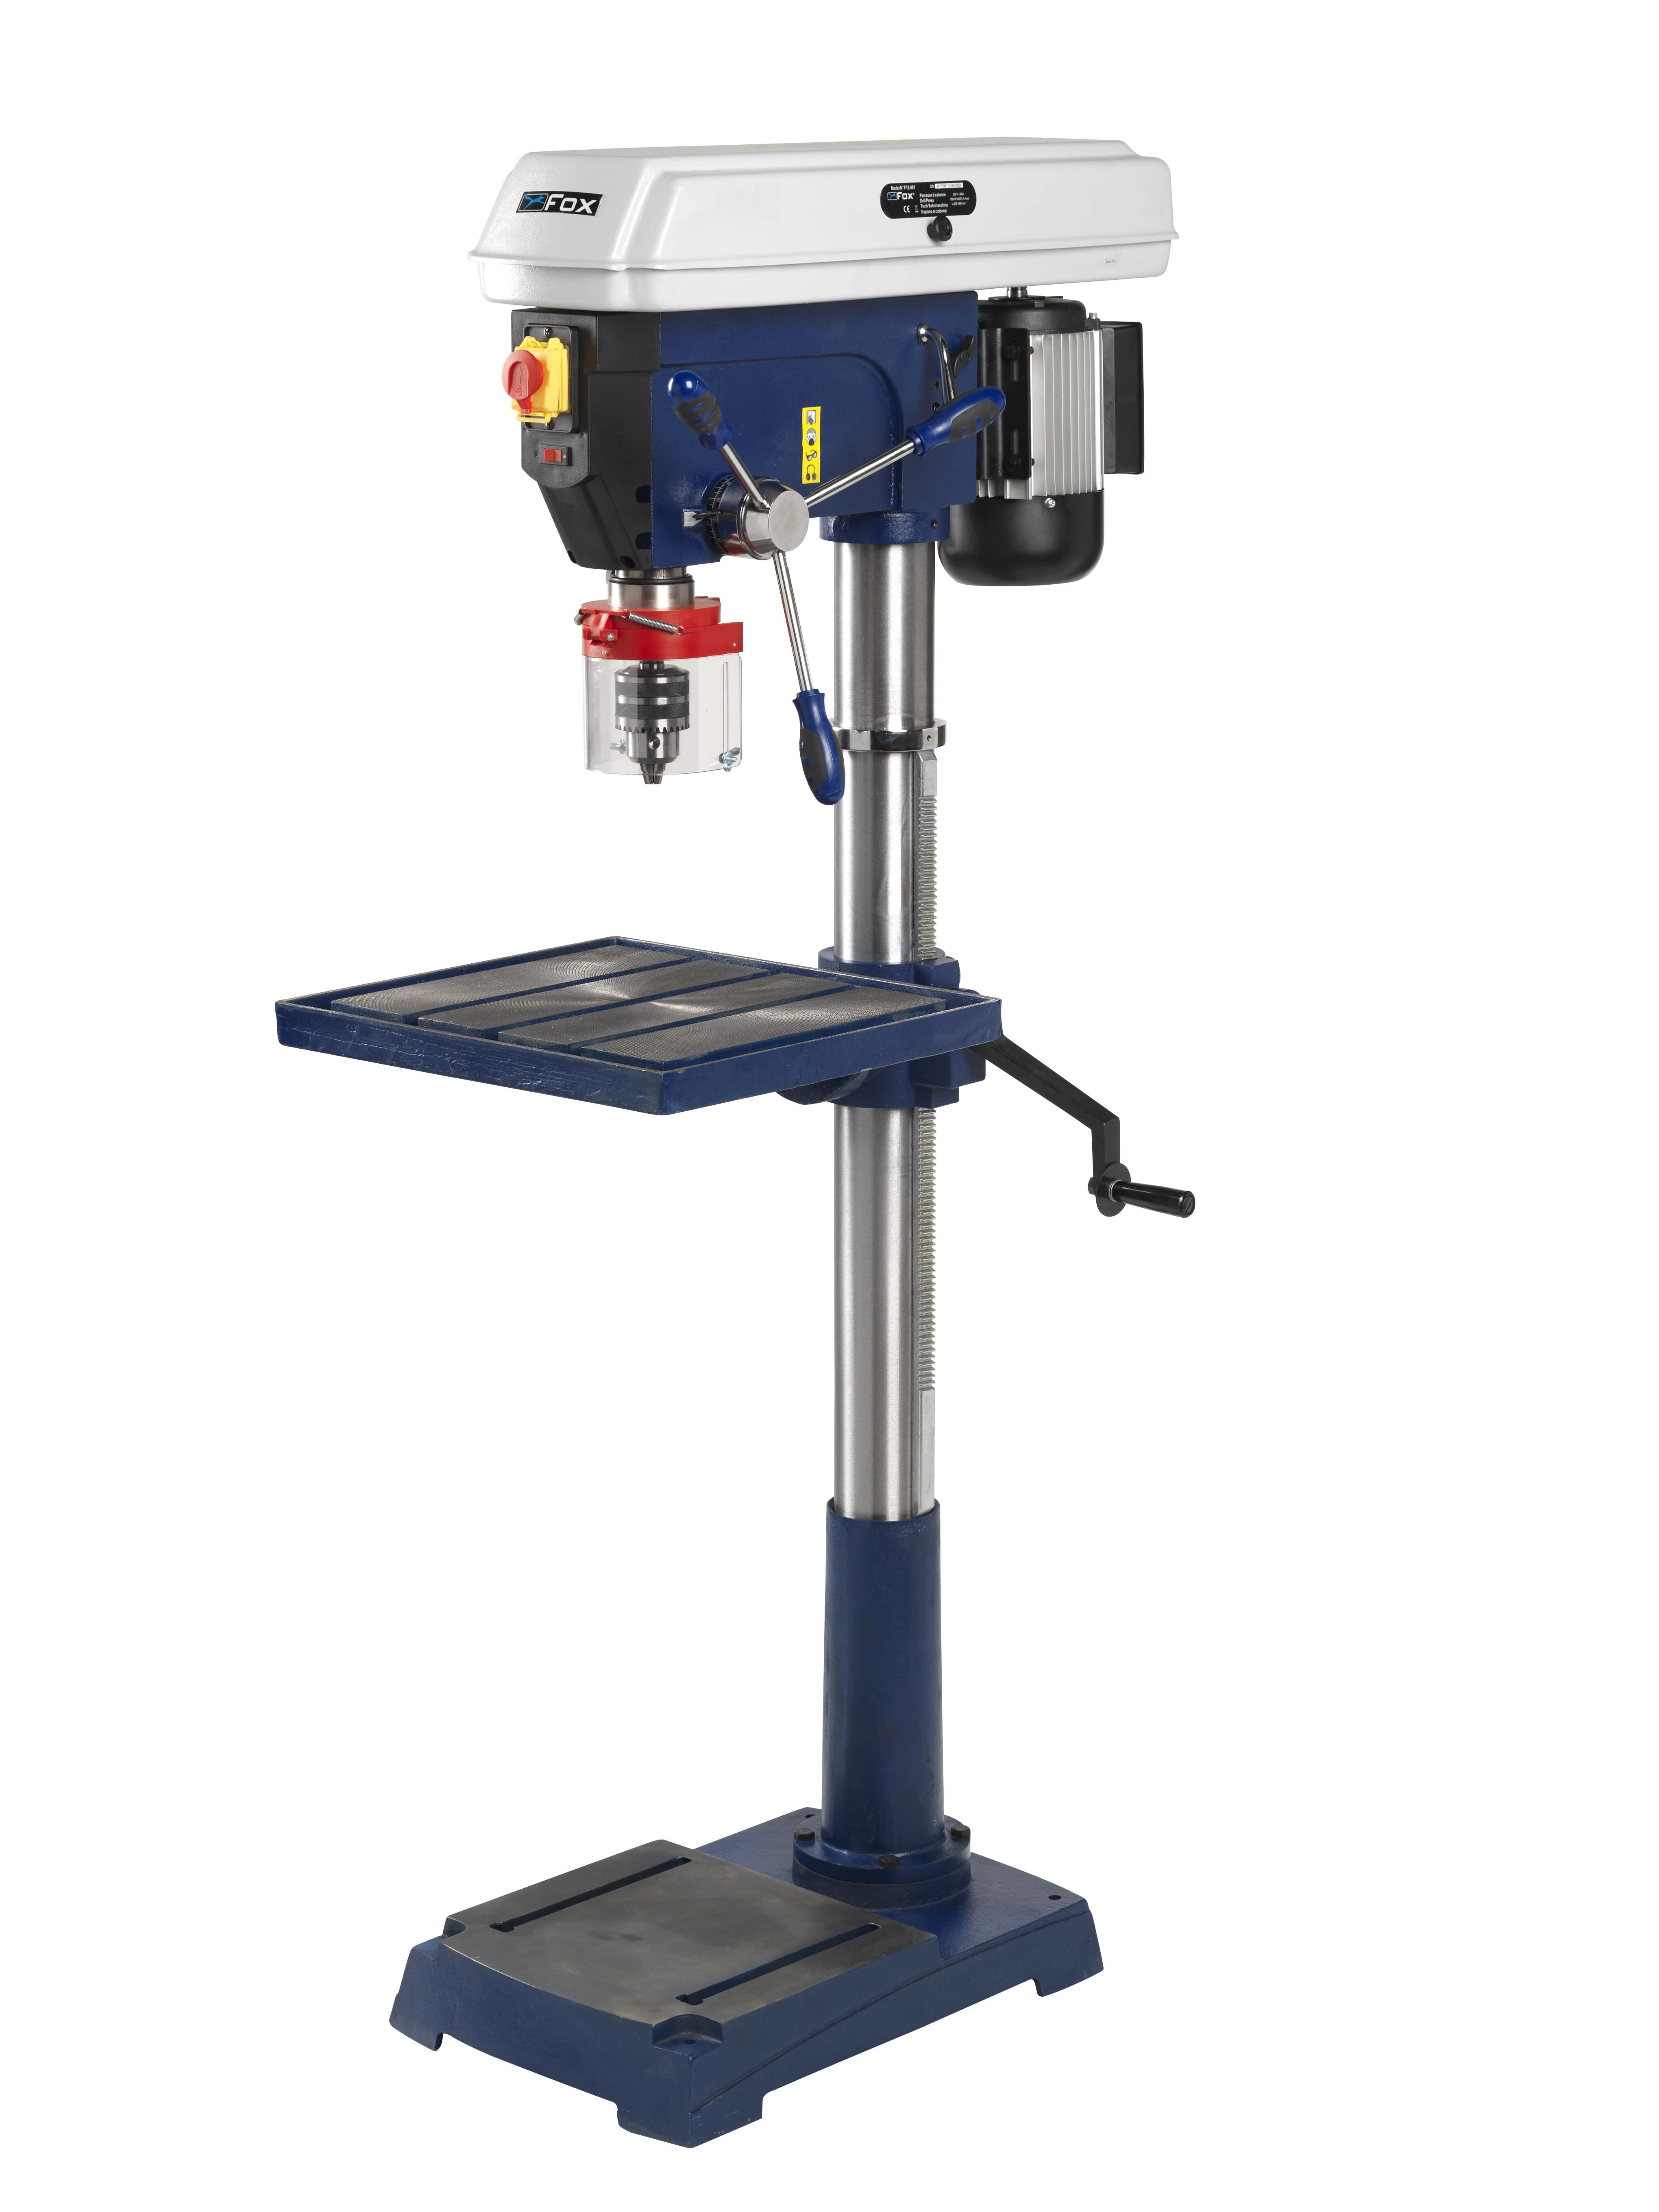 Drill presses drill press floor model chuck 20 mm and for Chuck s hardwood flooring